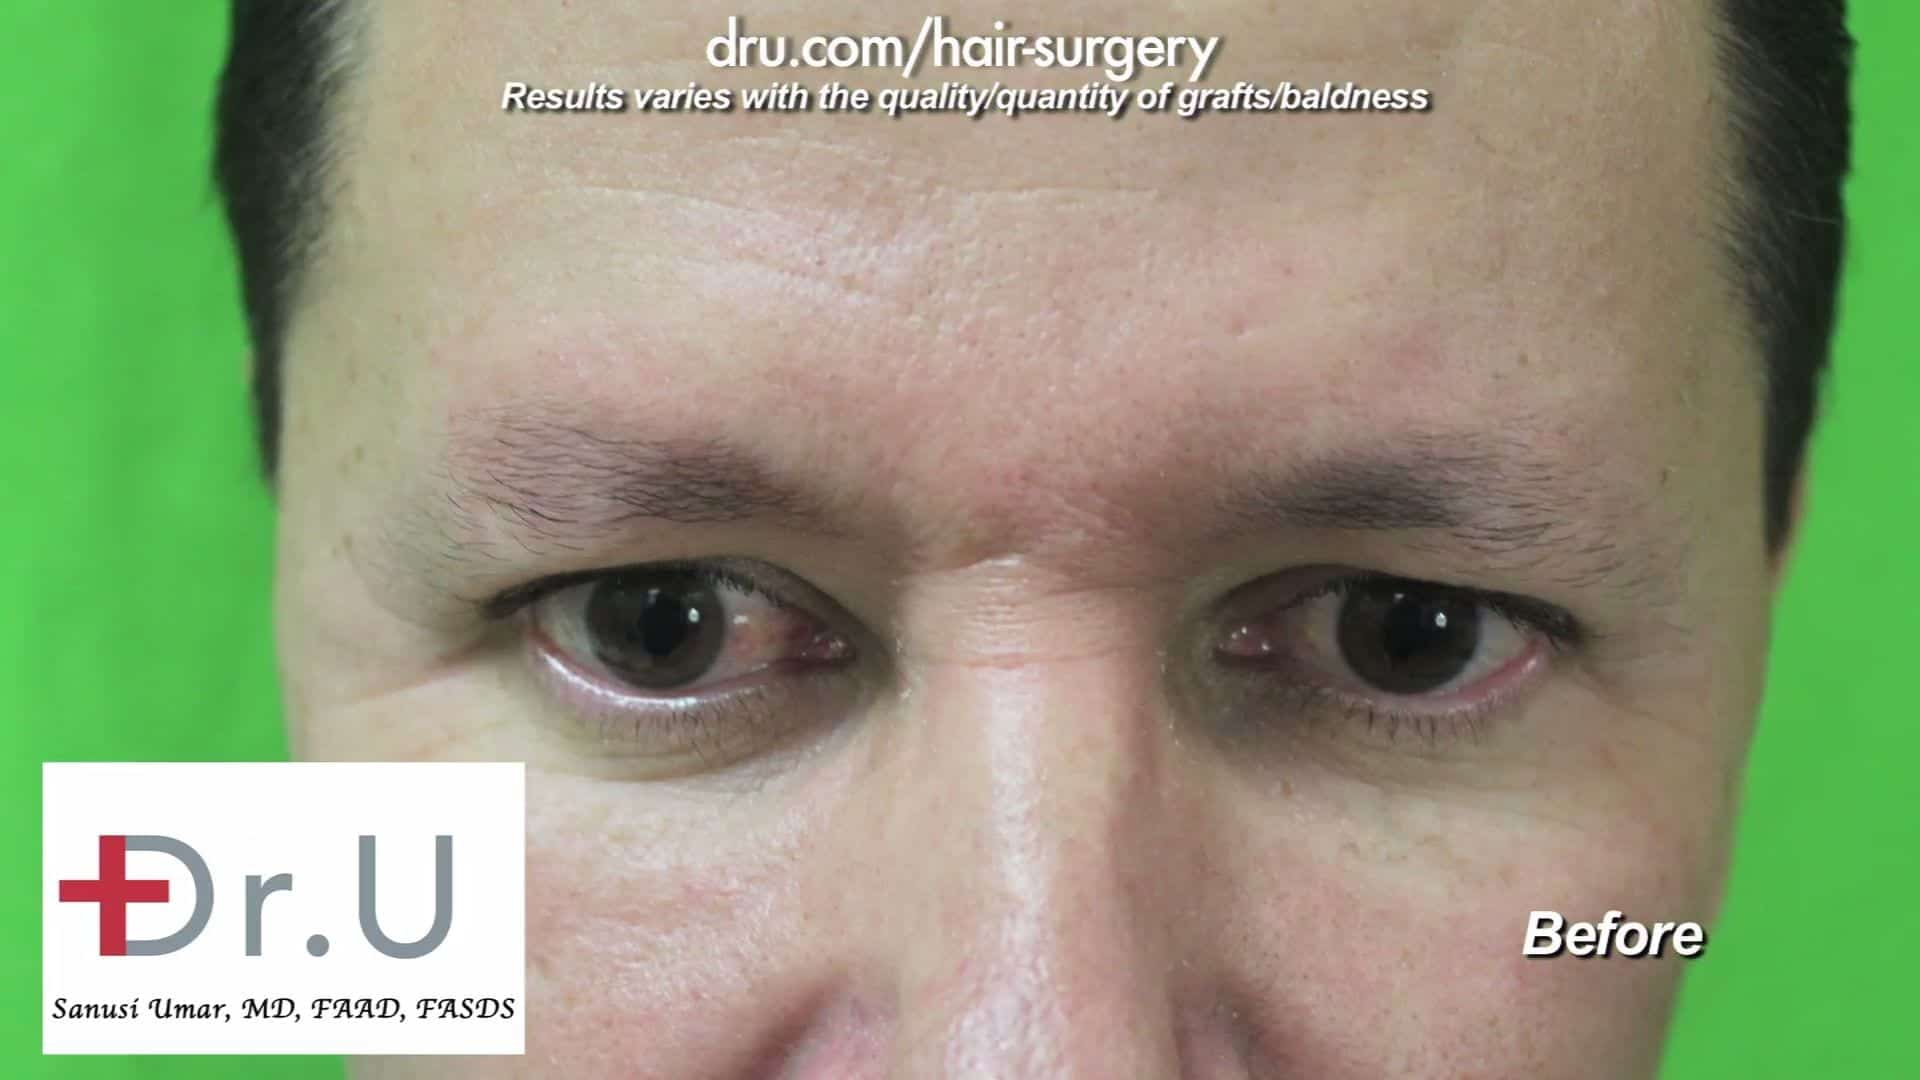 This patient feels his sparse eyebrows are unflattering in appearance and do not frame his face properly. He is, therefore, choosing to undergo an FUE eyebrow transplant for men.